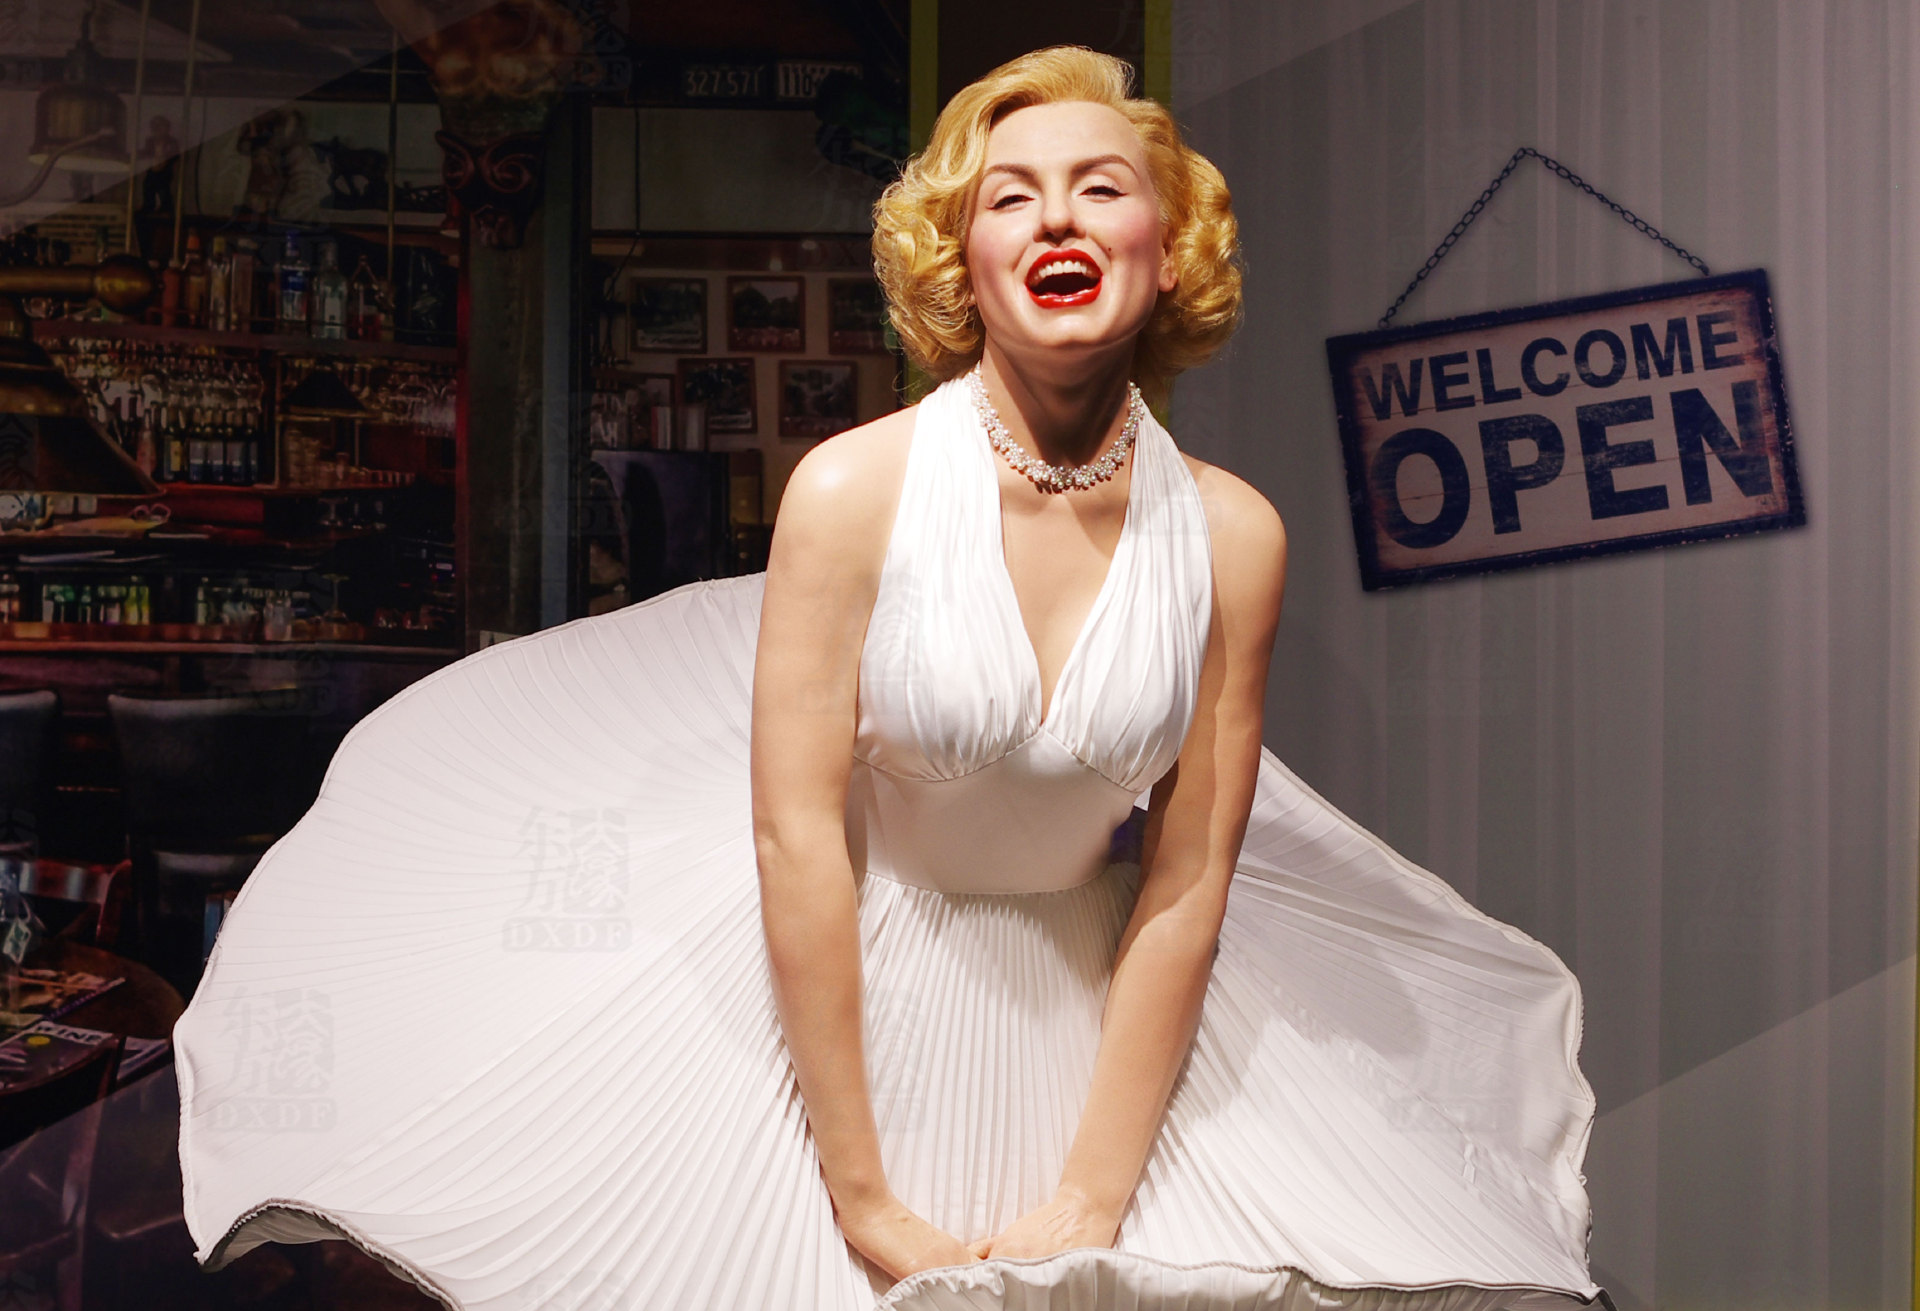 Wax Figure of Hollywood Sexy and Famous Star Marilyn Monroe